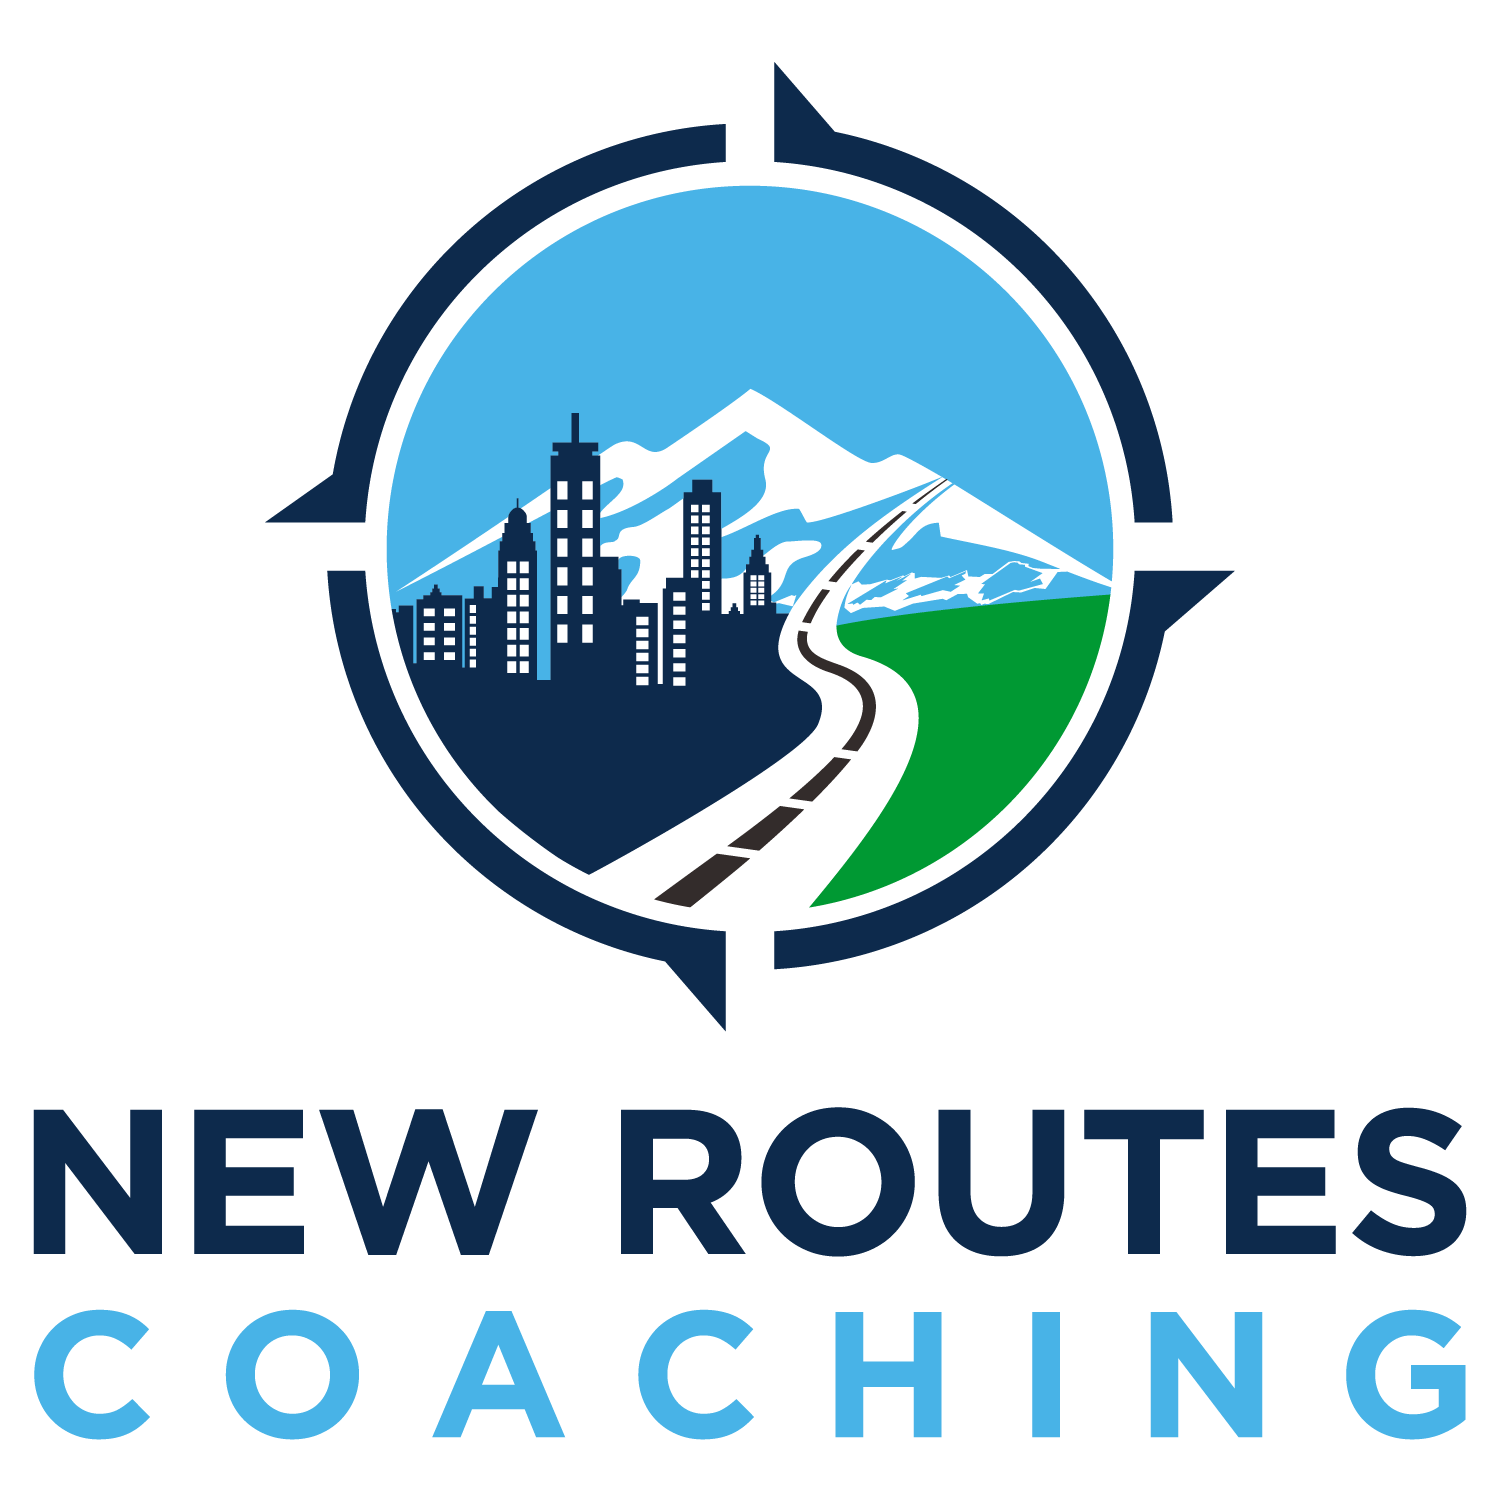 New Routes Coaching